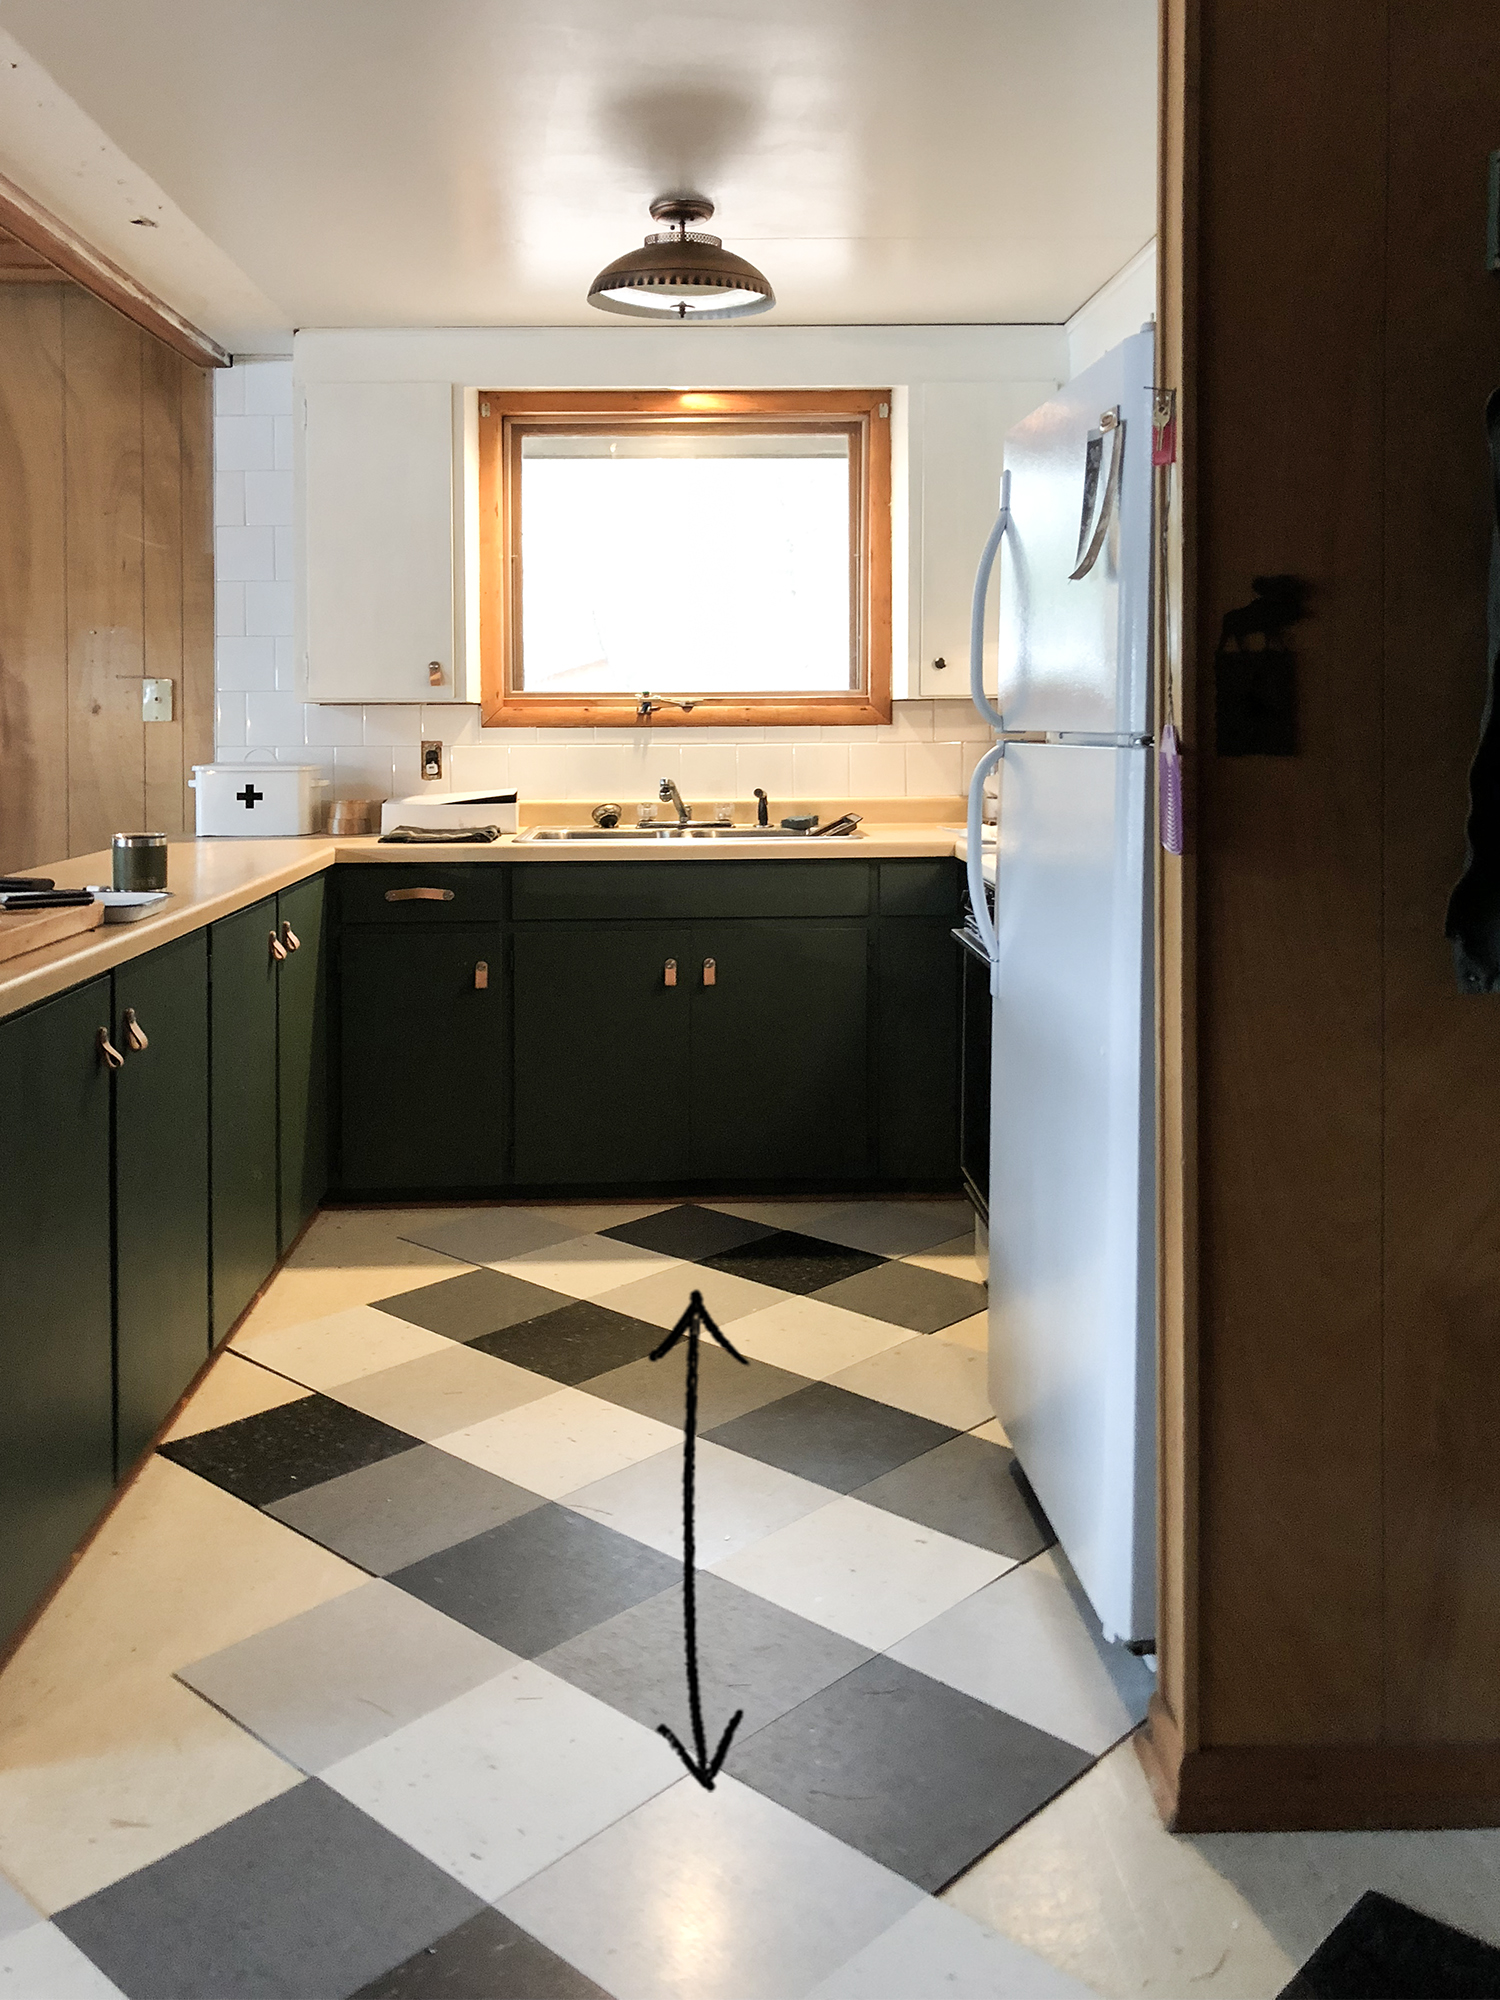 Updating our Vintage Cabin Kitchen // Deuce Cities Henhouse